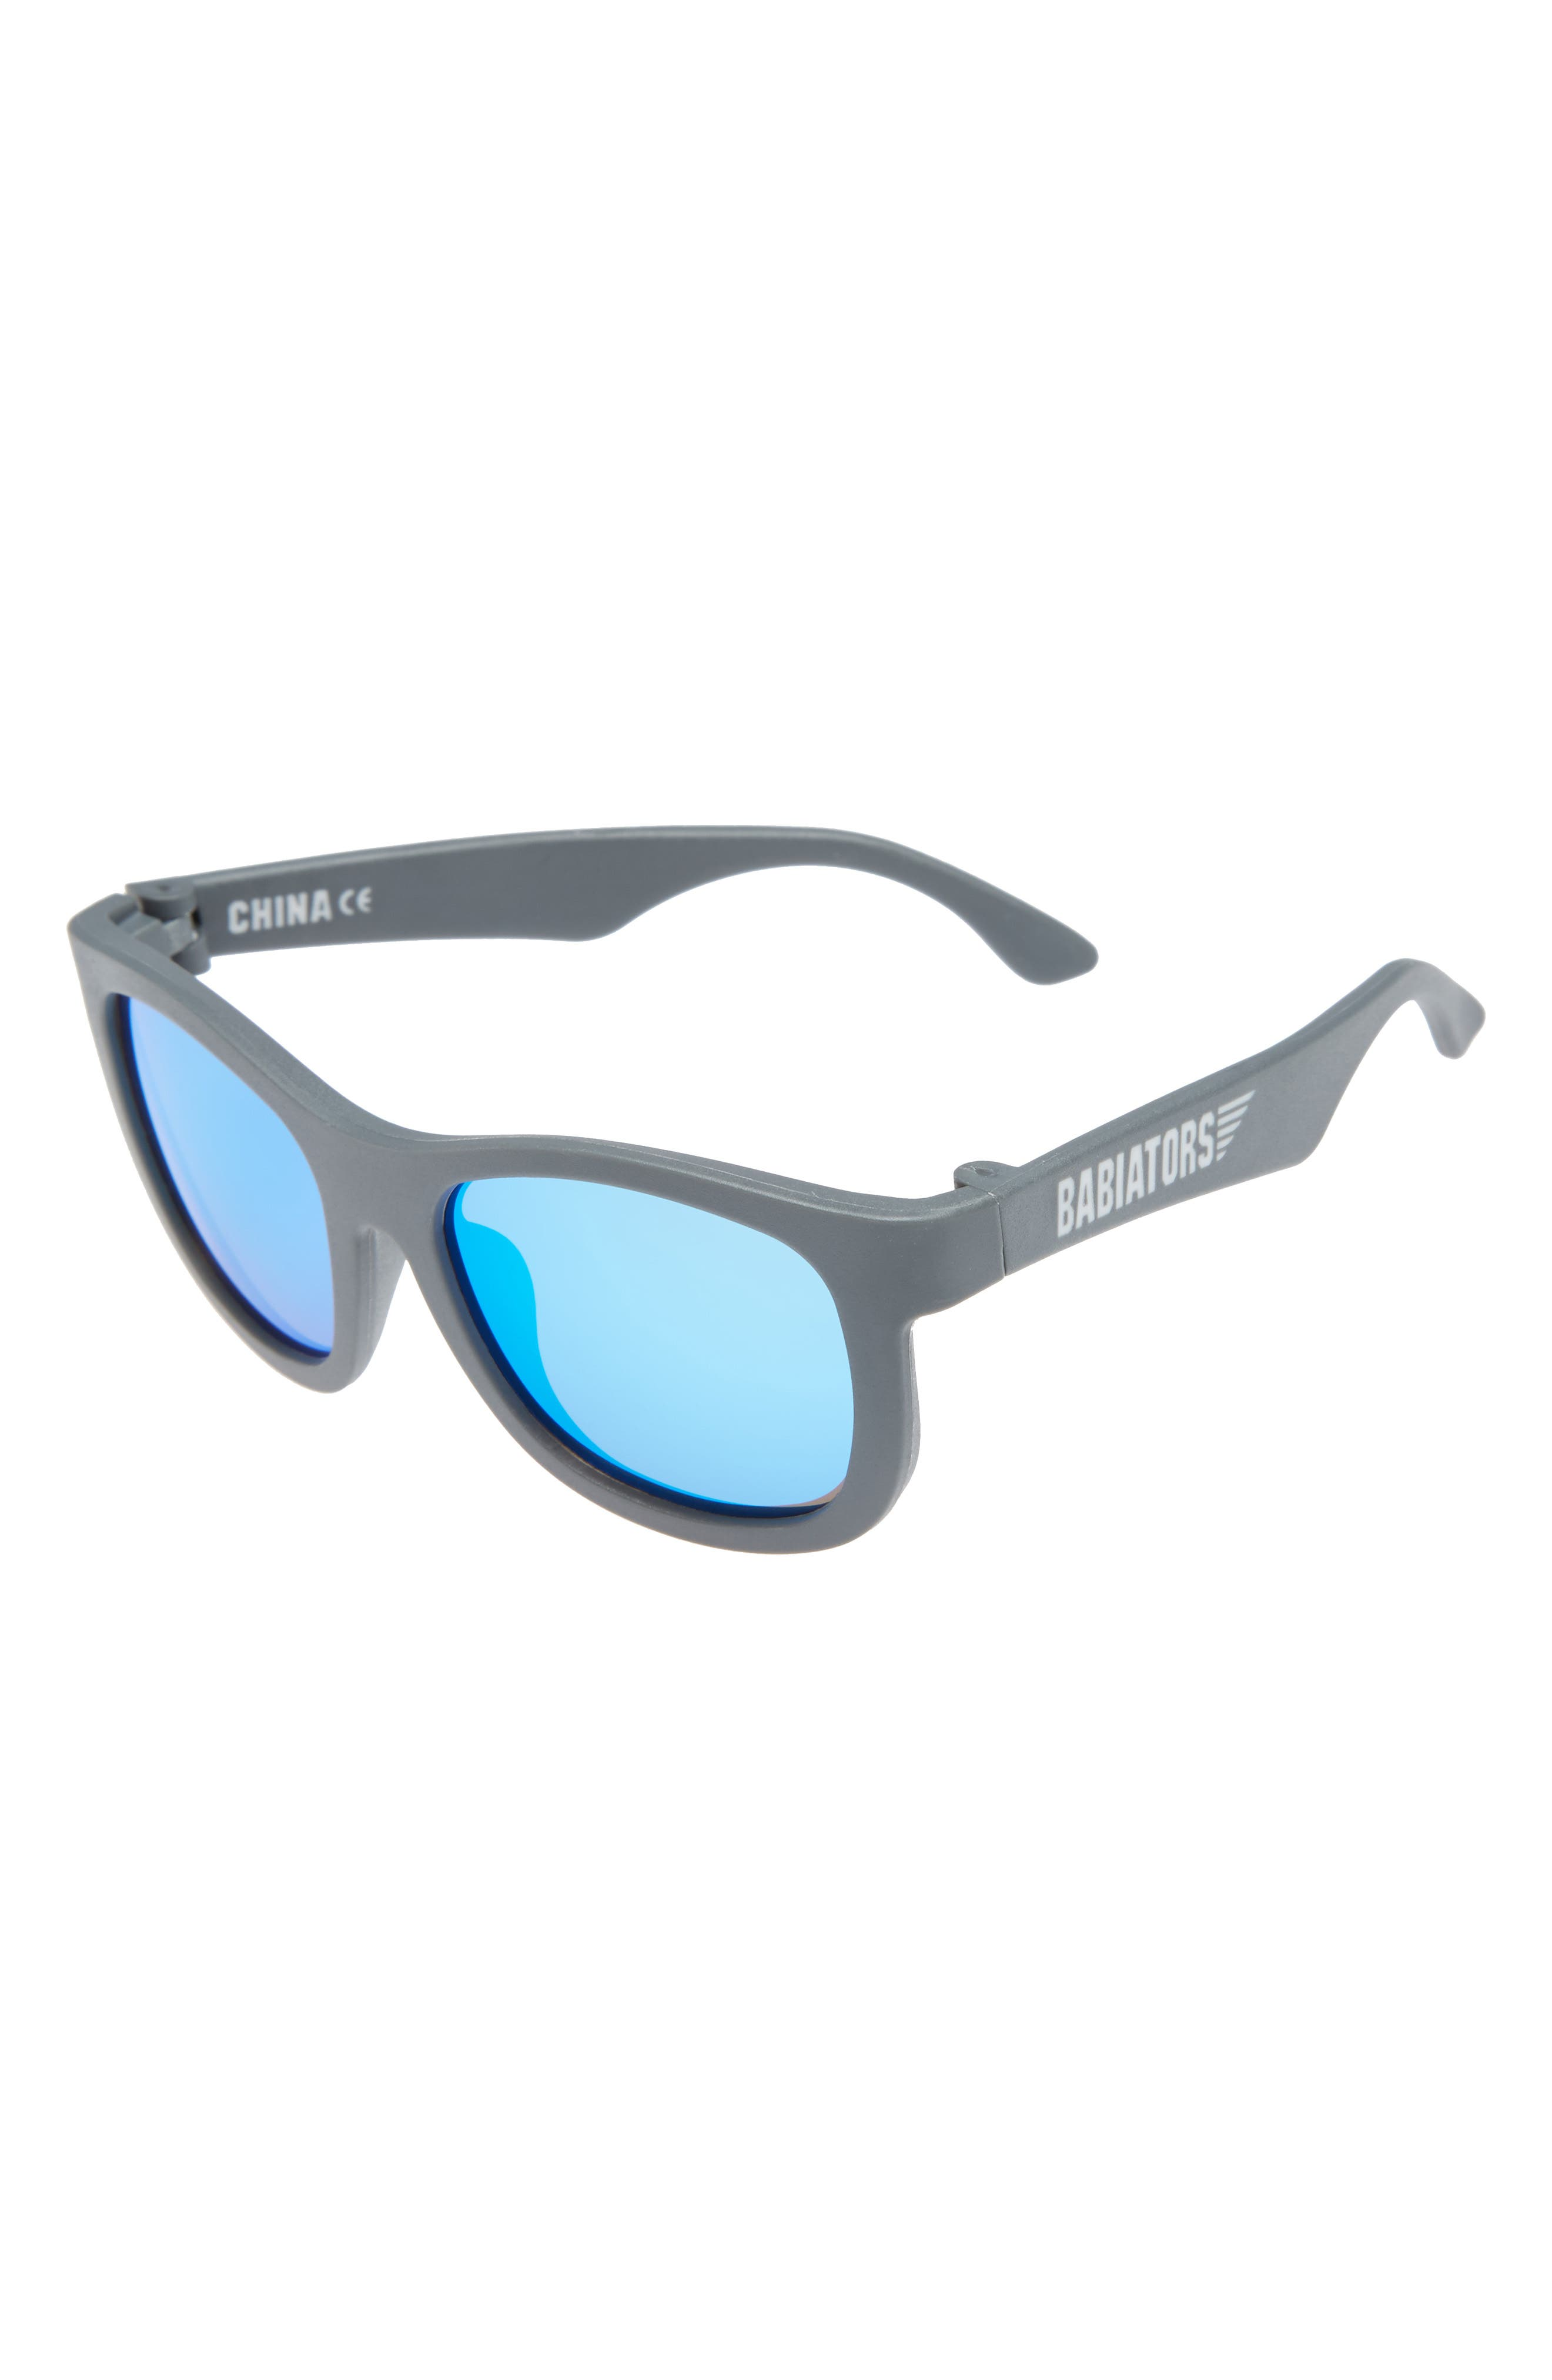 Babiators Limited Edition Mirrored Matte Frame Navigator Sunglasses